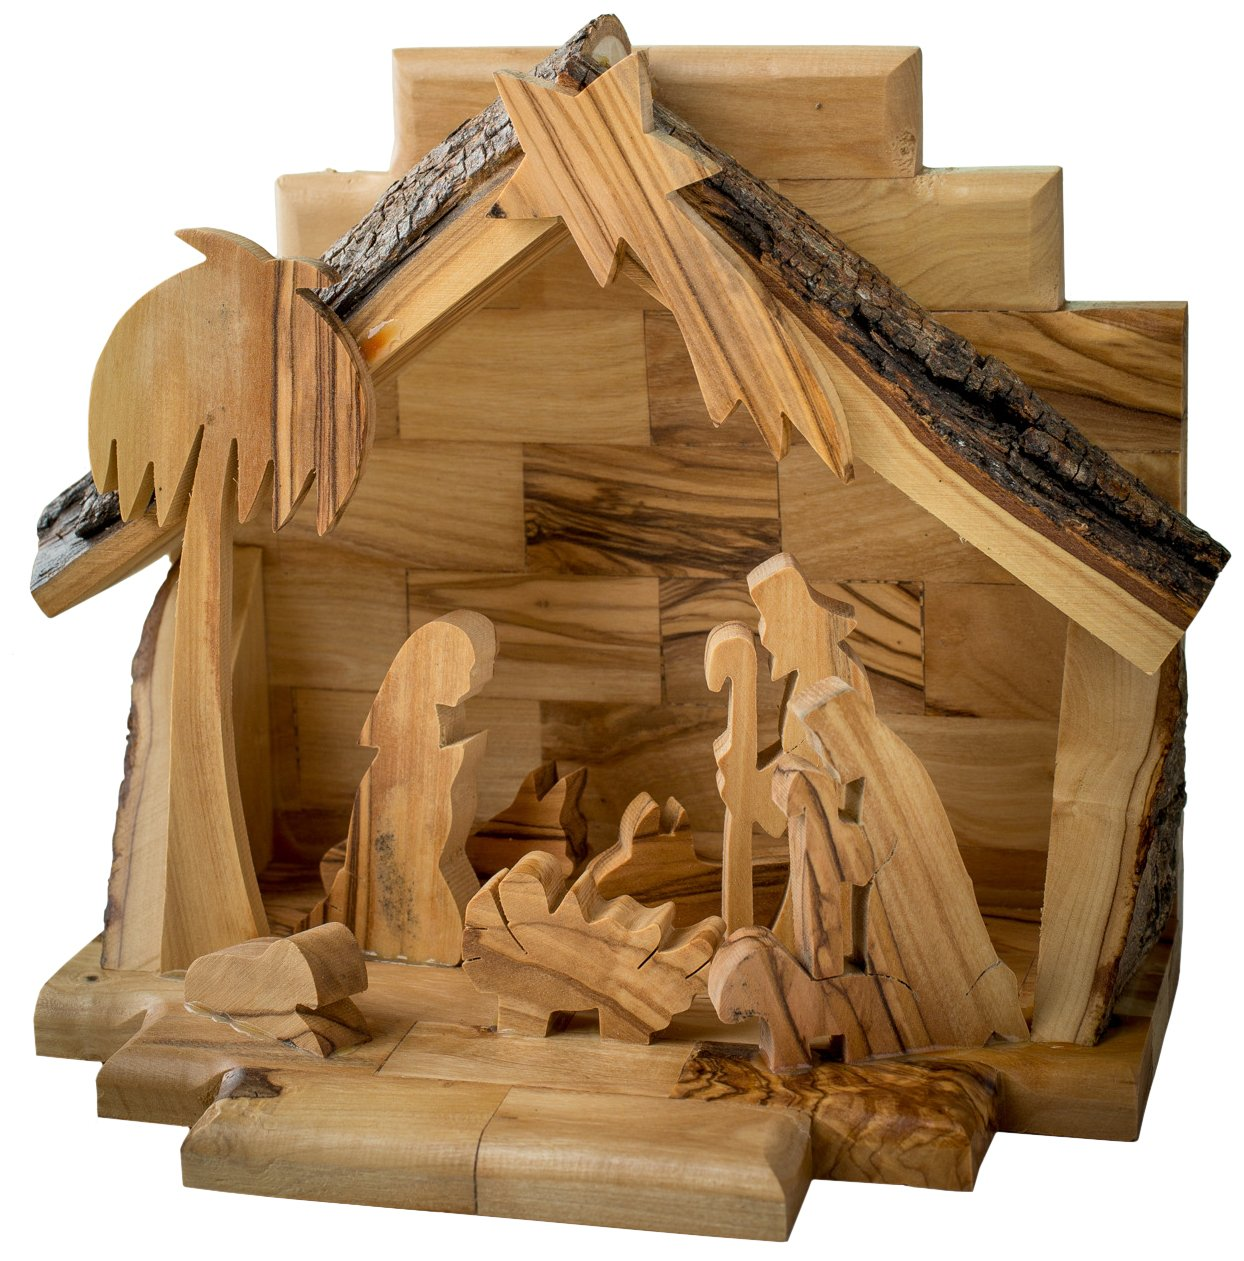 Earthwood Olive Wood Nativity Set with Silhouette Figures